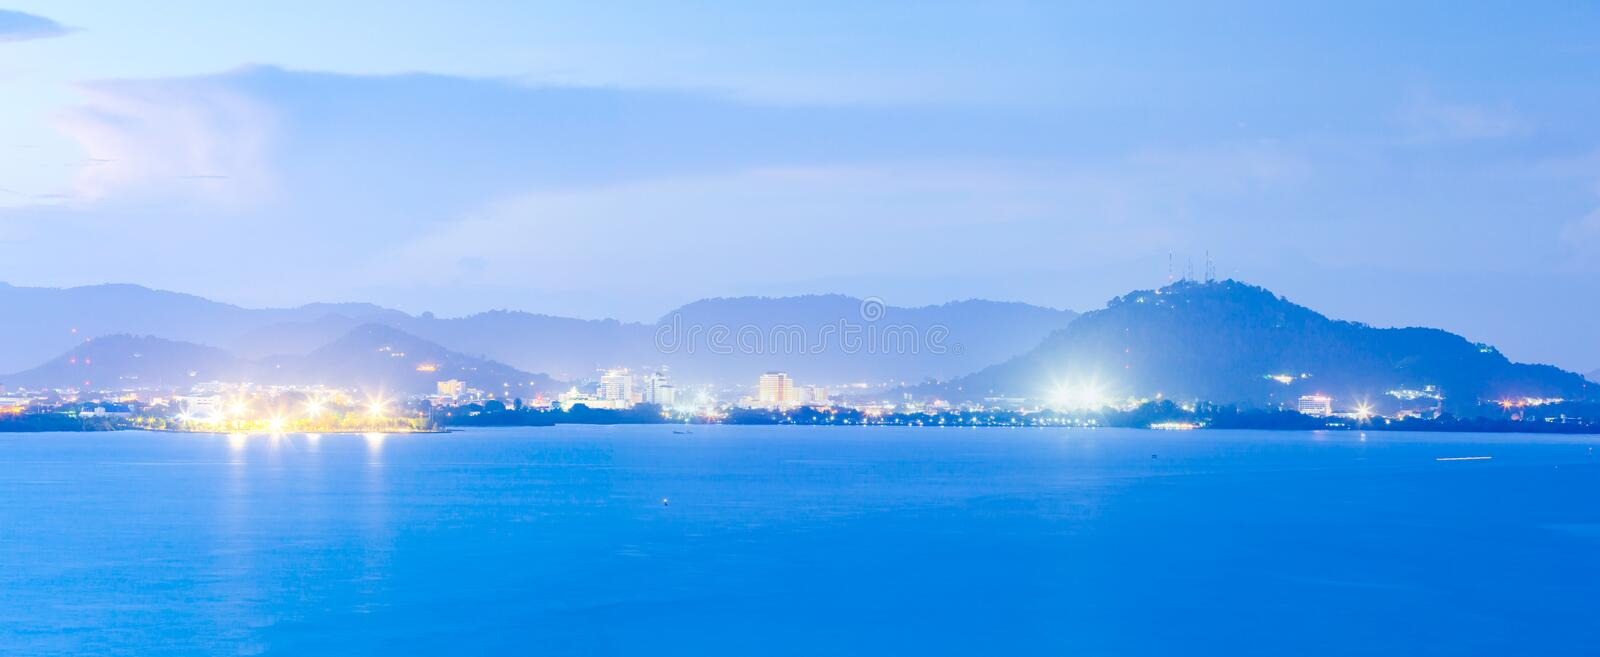 Phuket Island at twilight. Beautiful modern city with light, mountains and sunset sky backgrounds, twilight reflecting in the sea royalty free stock image